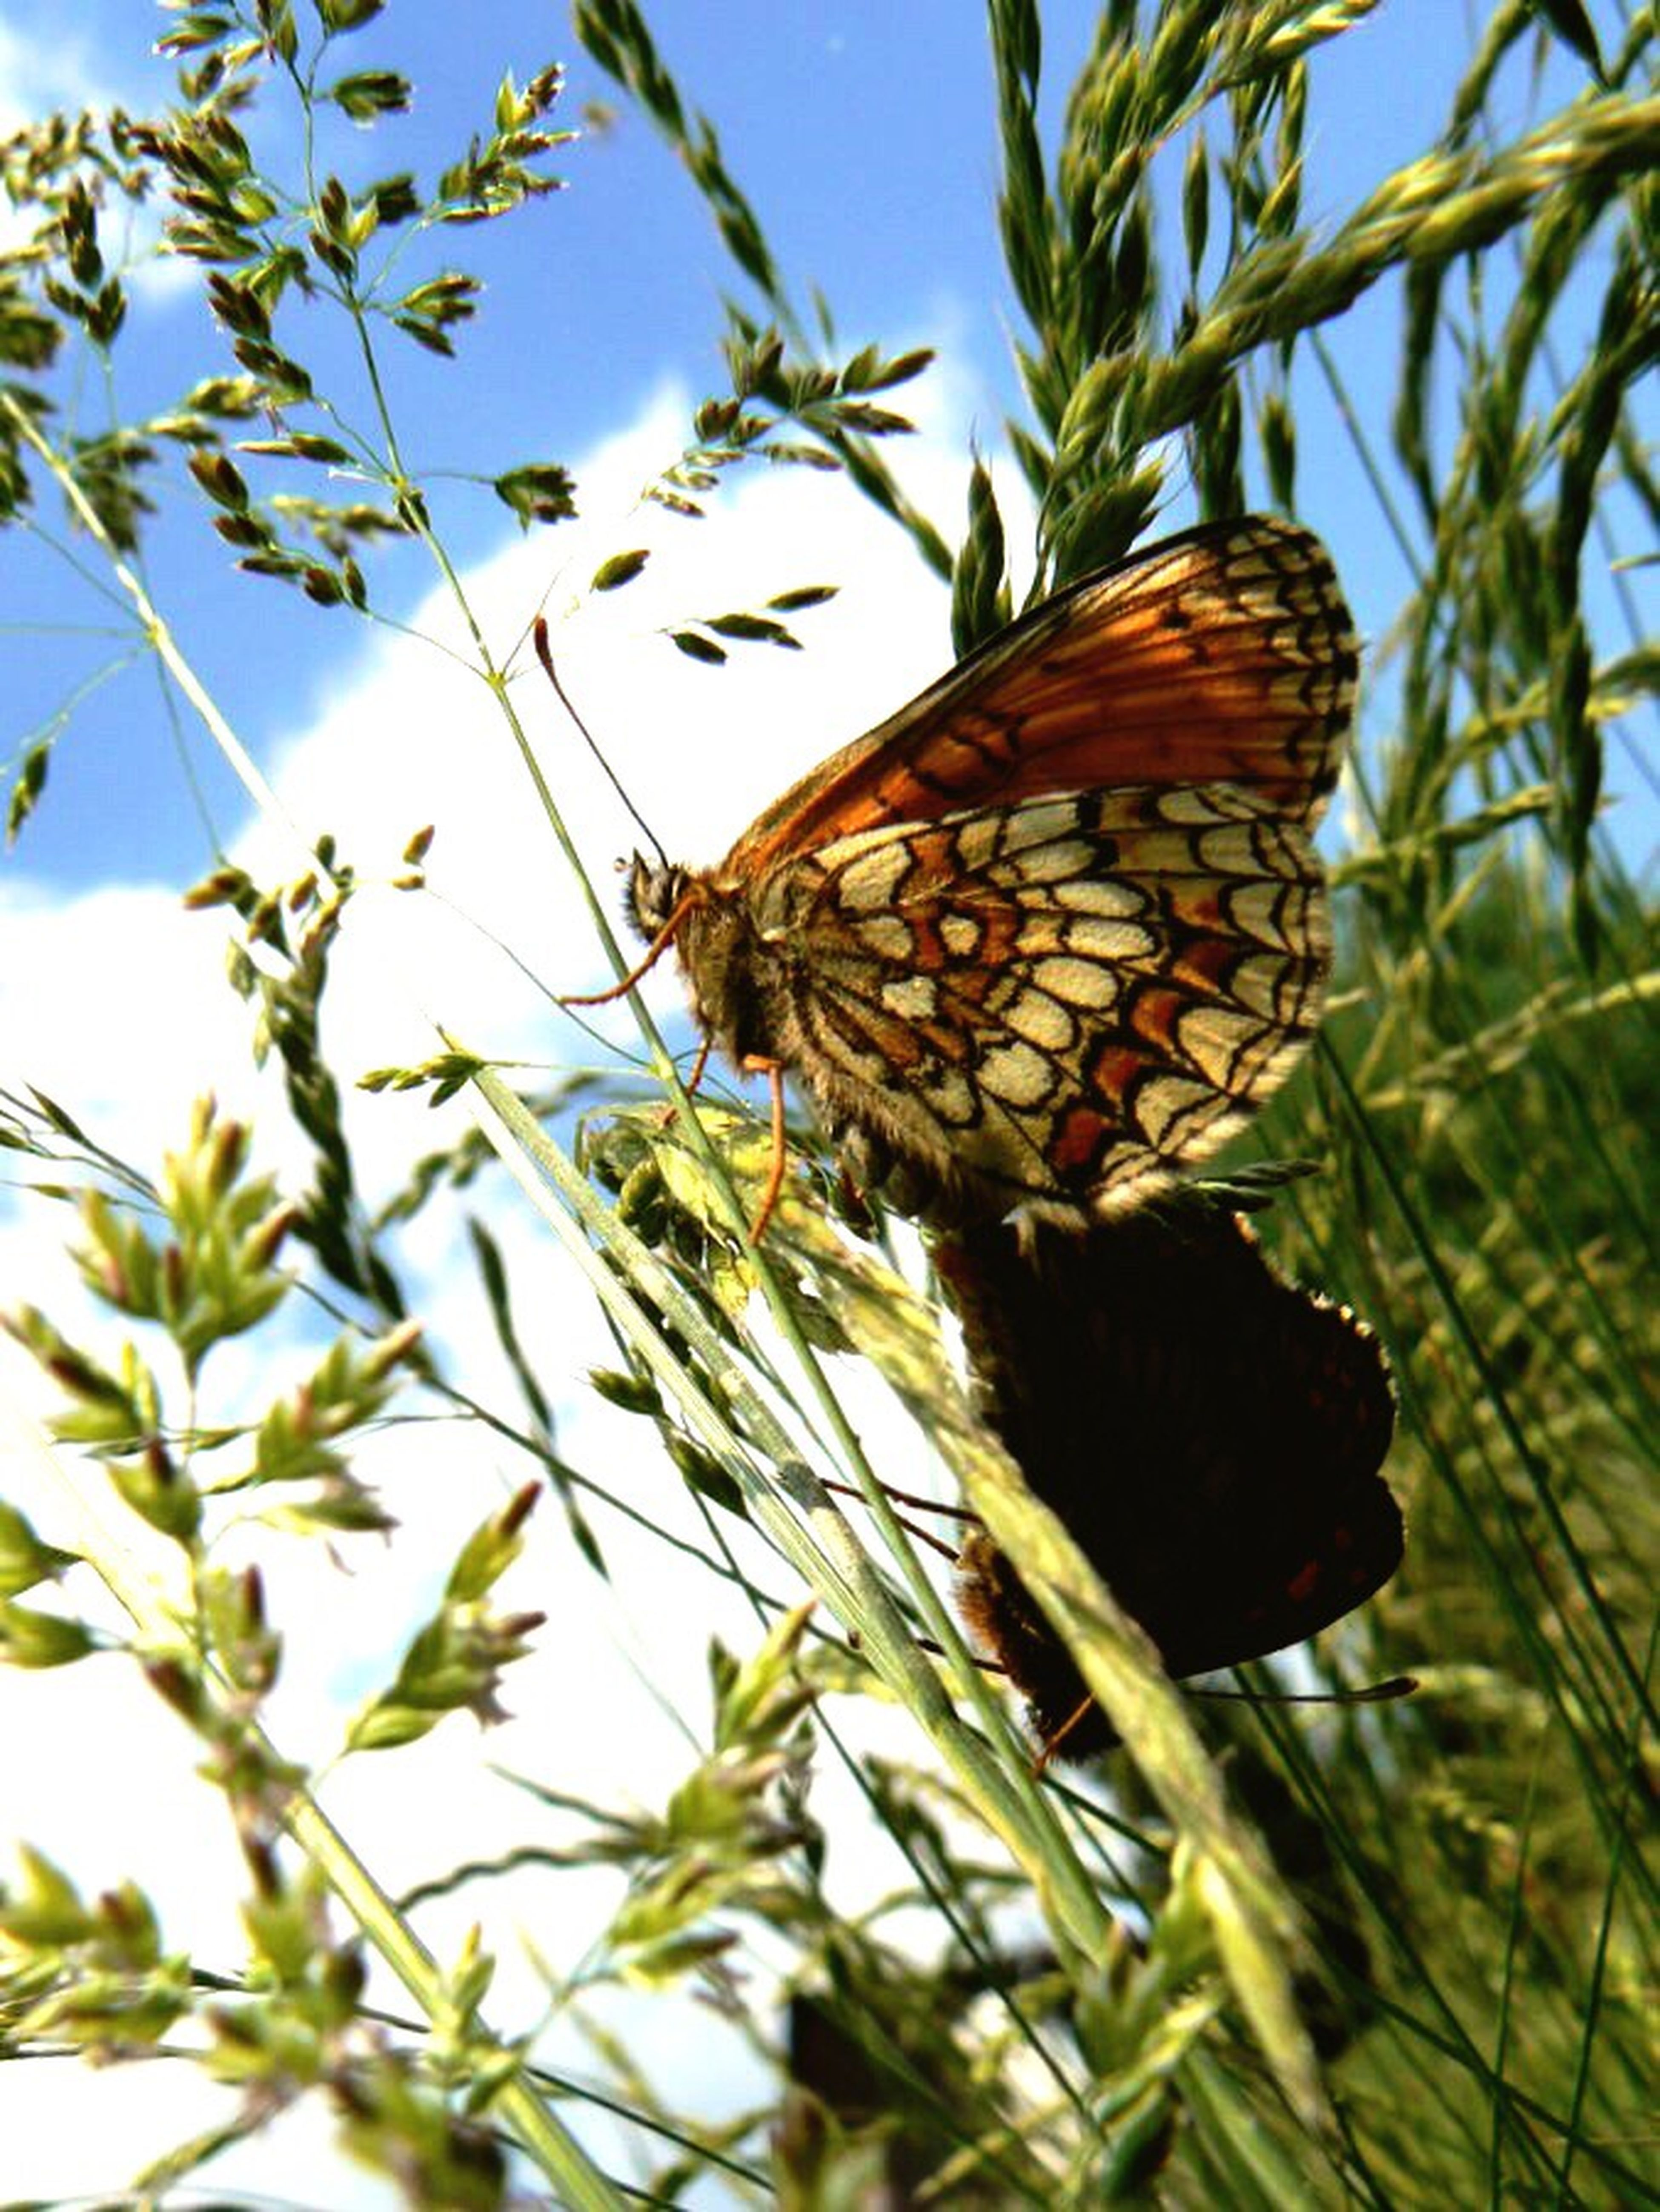 Butterfly Animals In The Wild Butterfly - Insect Two Love No People Insect Nature Plant Beauty In Nature Riegersburg Austria Styria Wiese Scenics Meadow Flowers Wiese Blumen Schmetterlinge Lieben Tag schön Summer Sommer